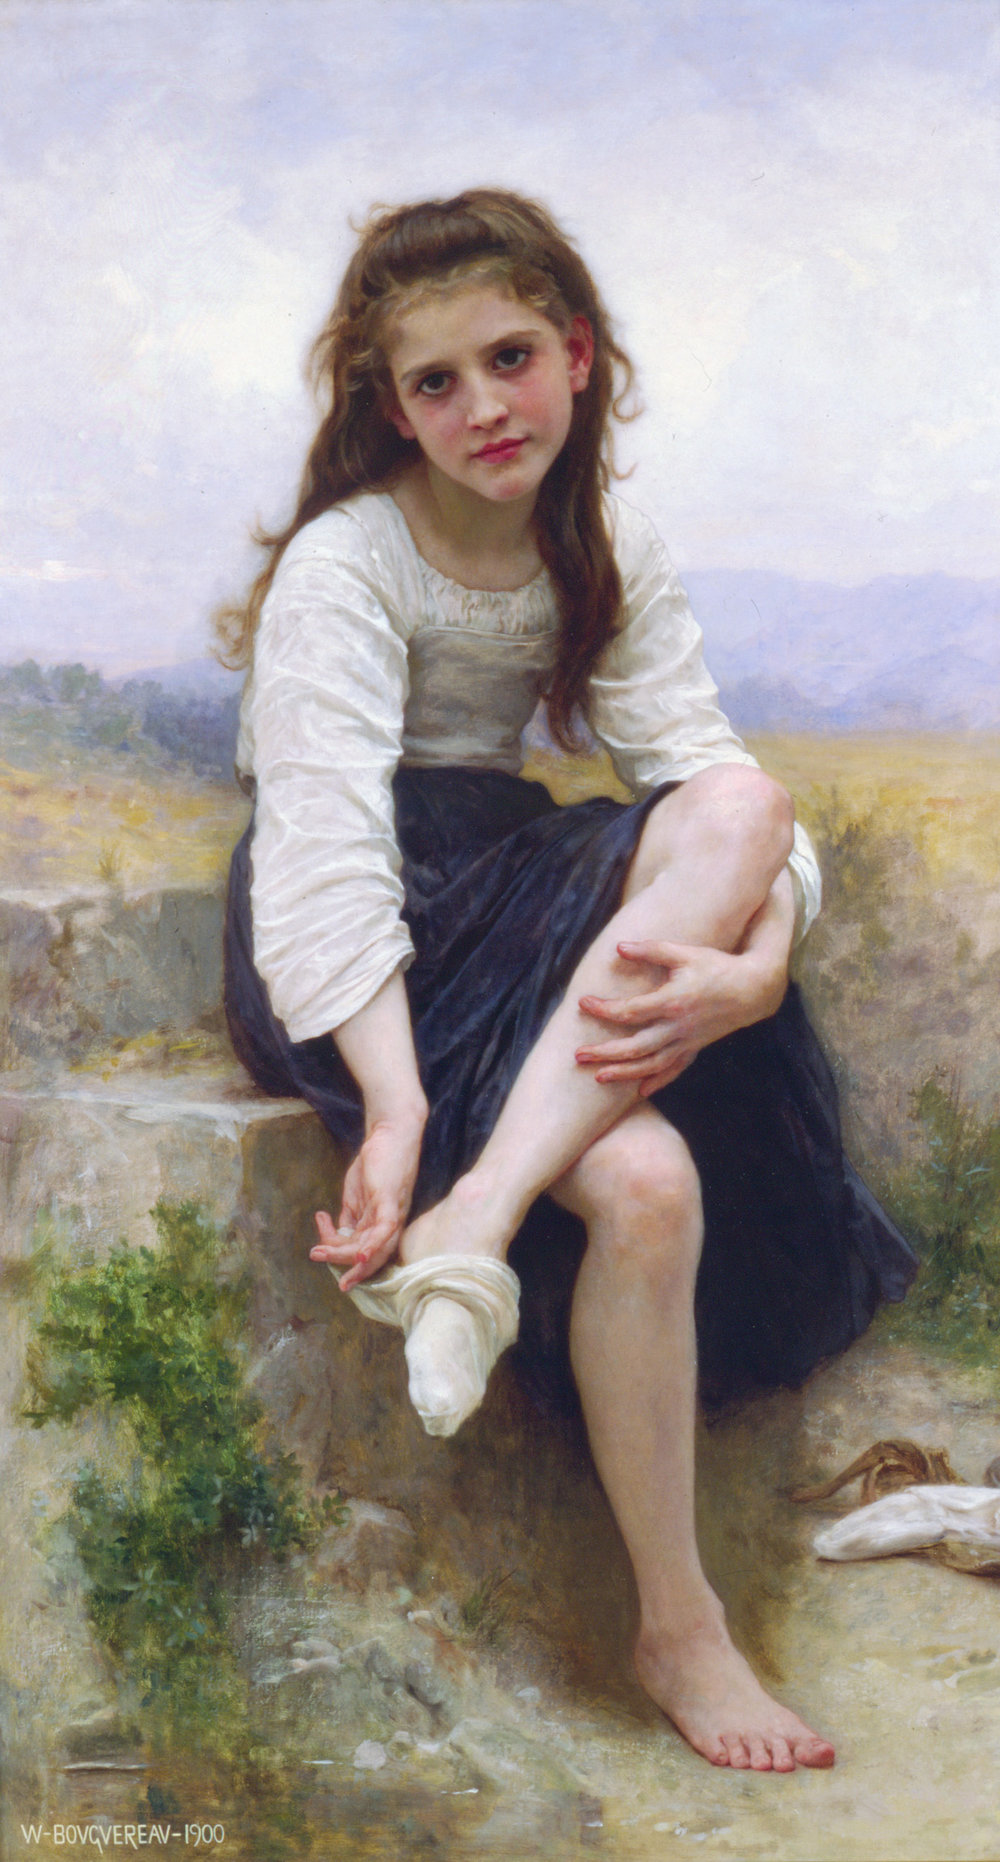 William Adolphe Bouguereau (French,1825 - 1905), Before the Bath, Oil on Canvas, 53 x 29 ½ in.